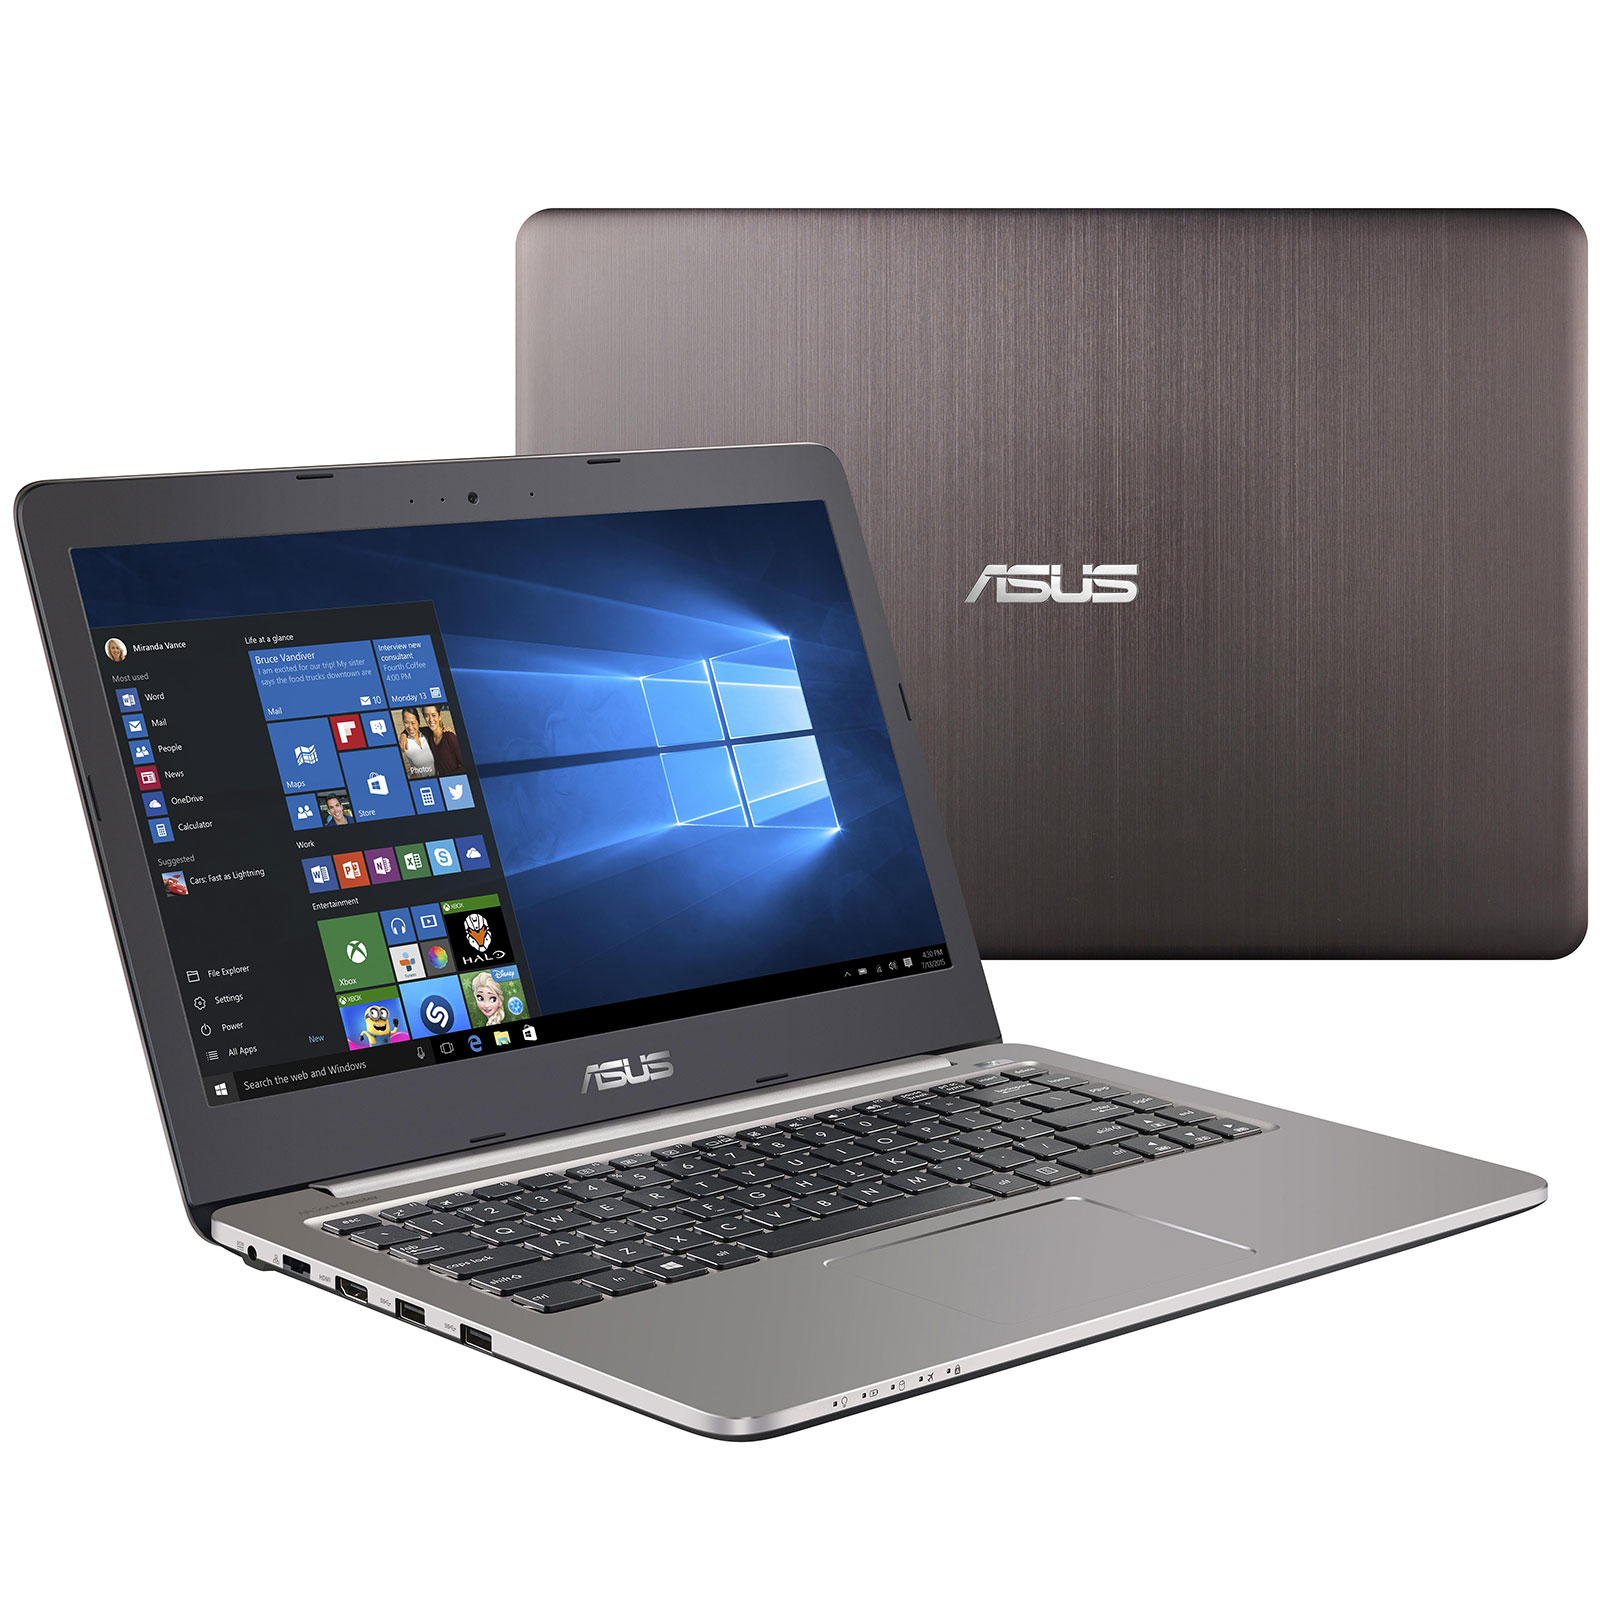 asus r415ub fr027t pc portable asus sur. Black Bedroom Furniture Sets. Home Design Ideas